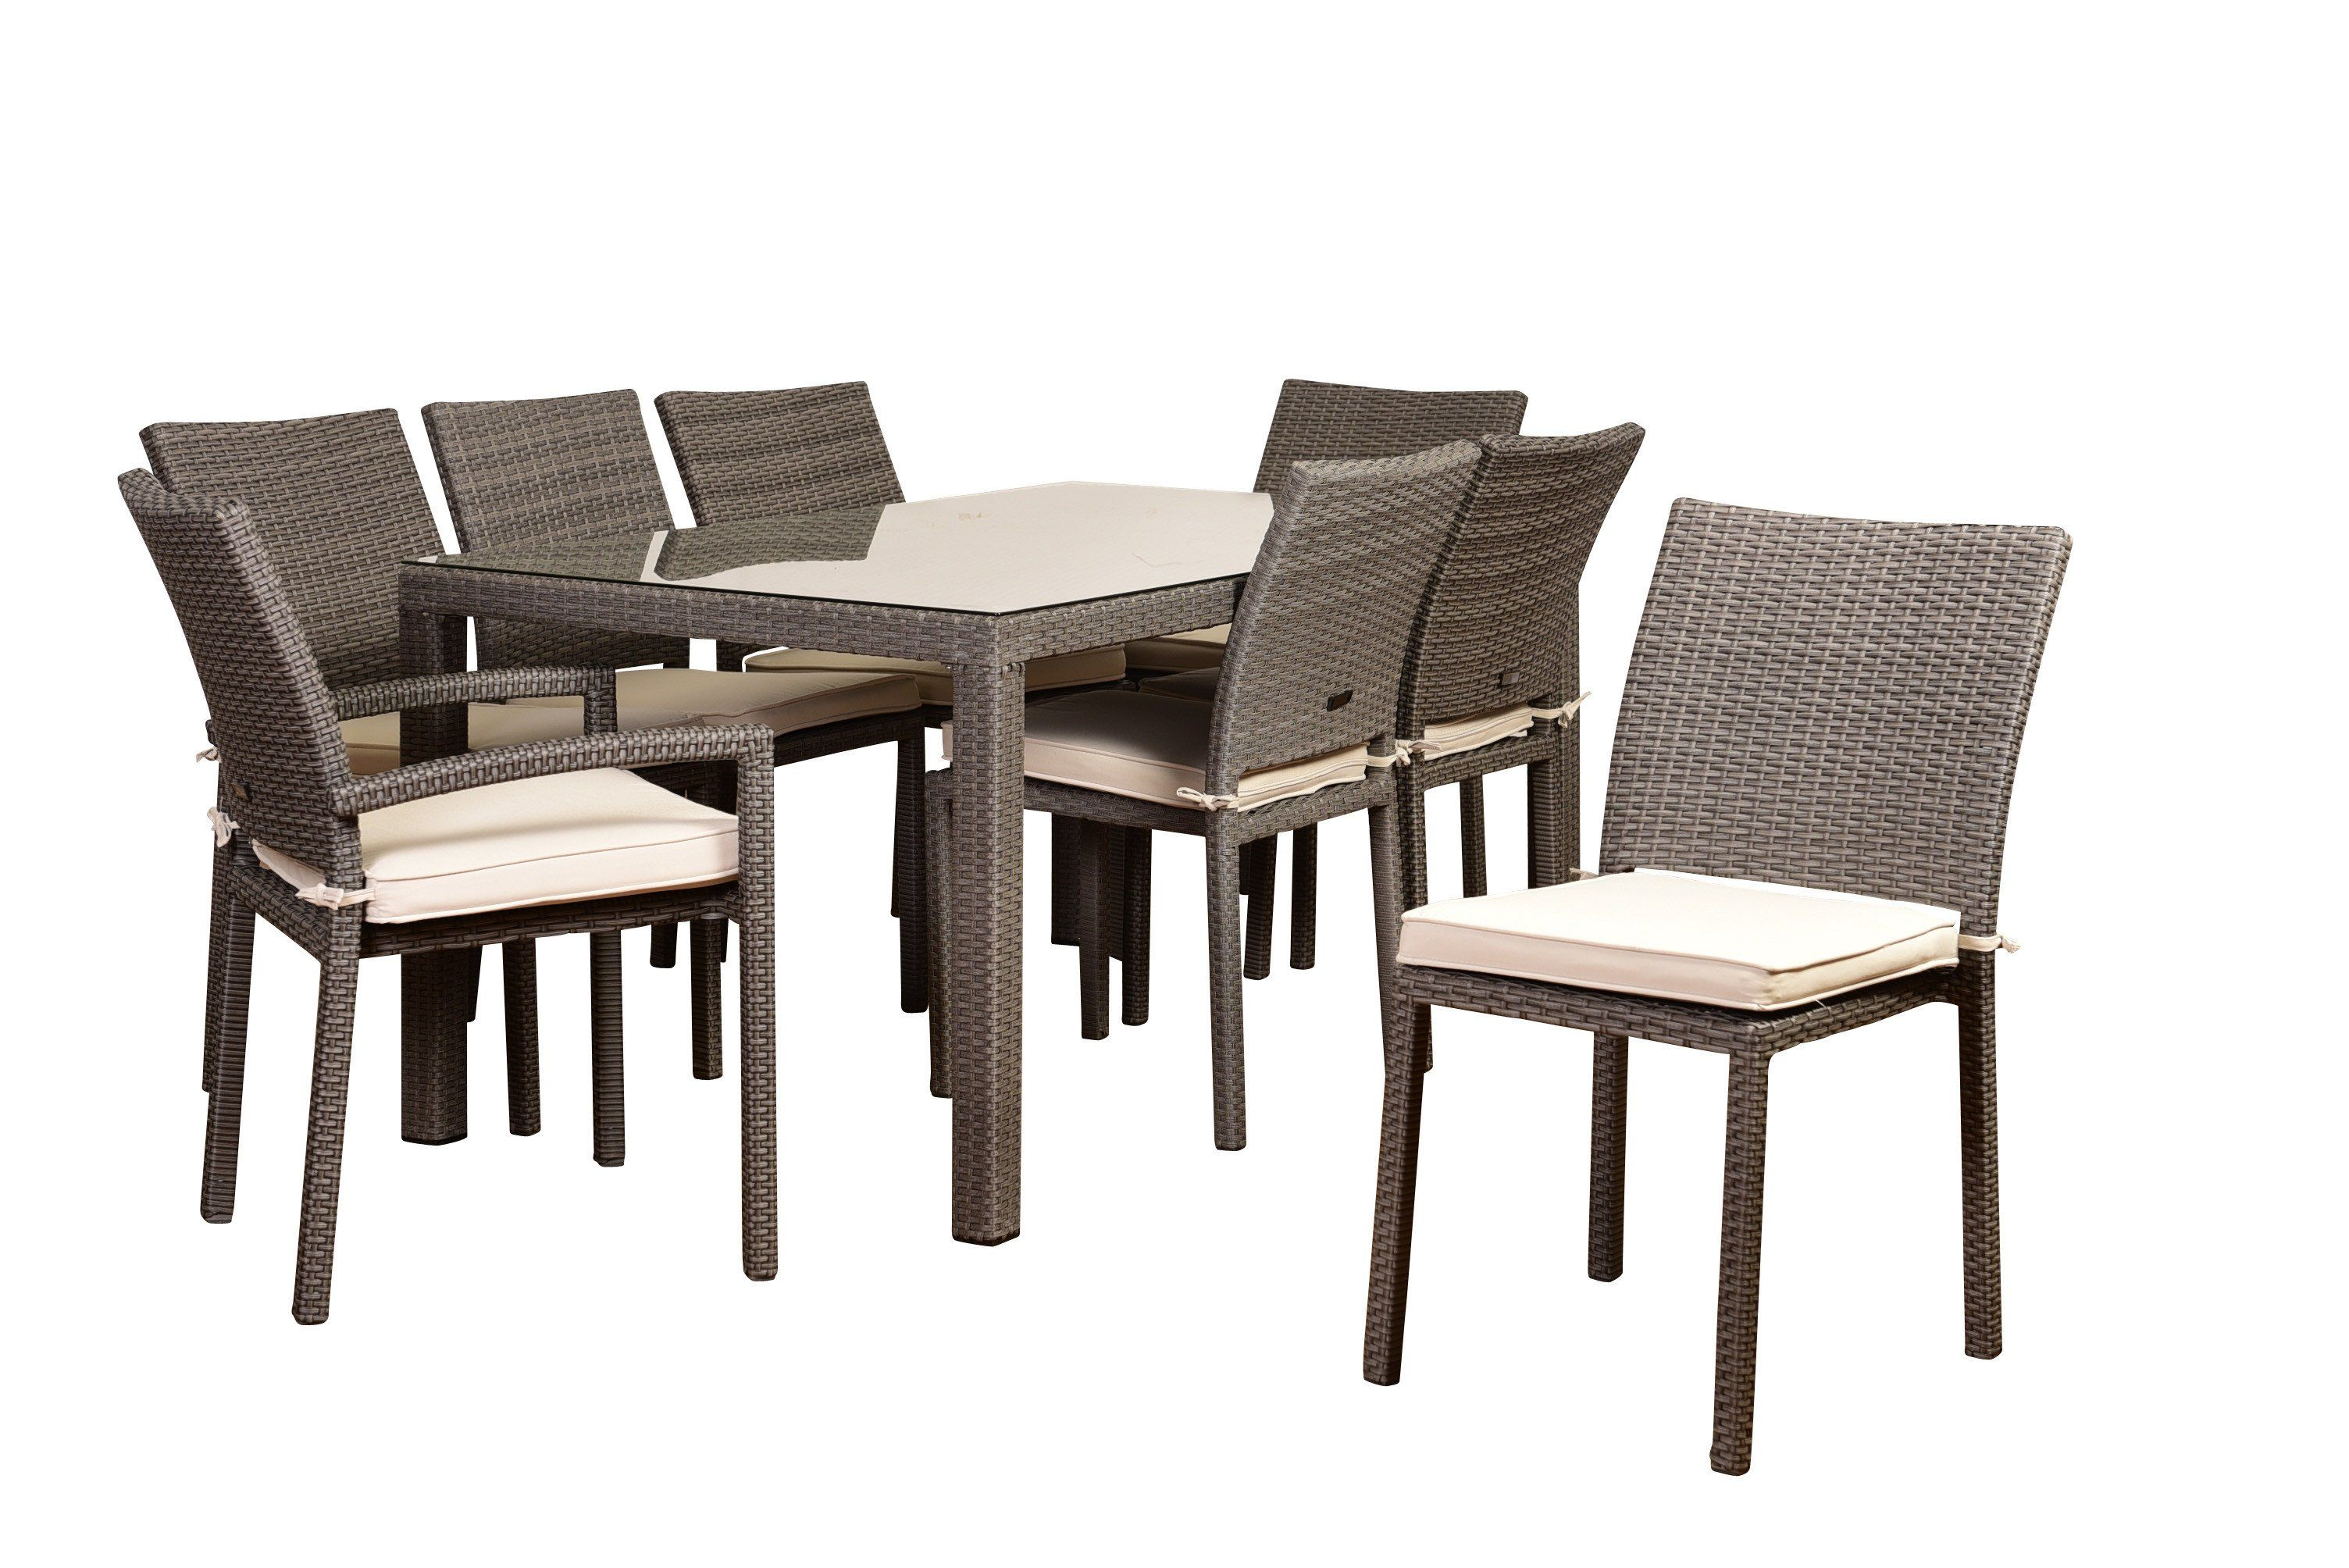 Atlantic Liberty 9 Piece Rectangular Patio Dining Set